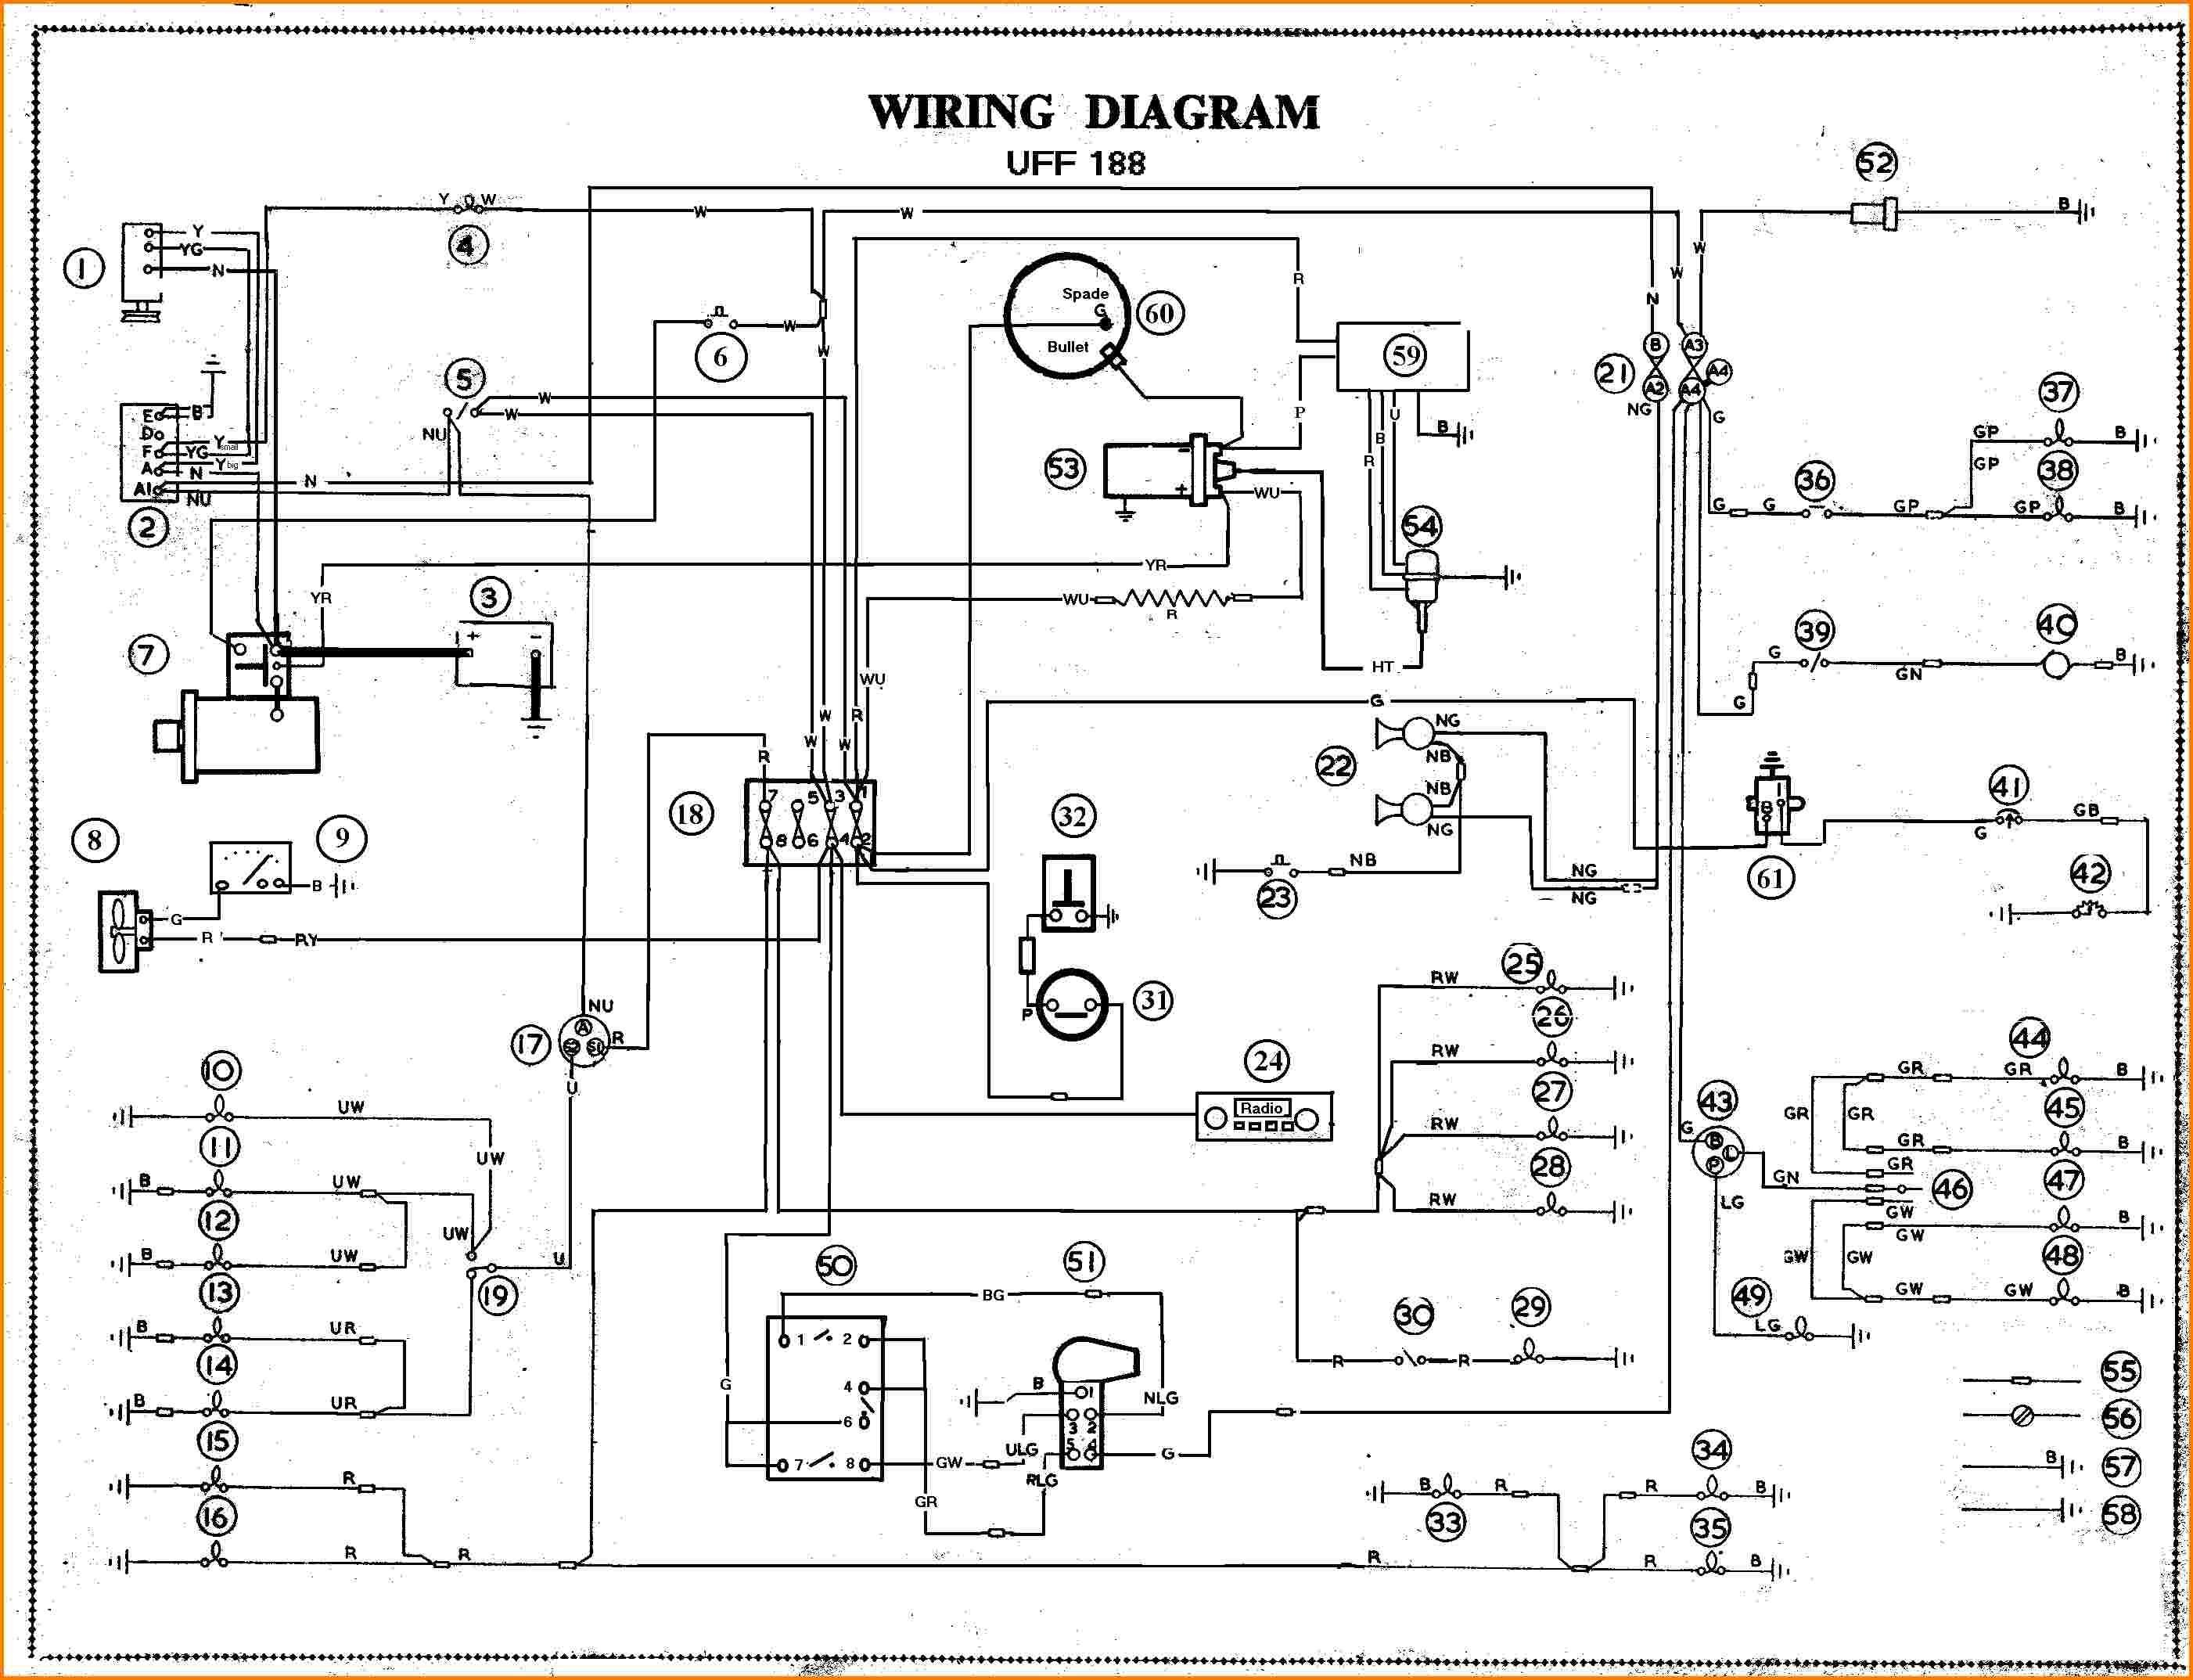 Spdt Micro Switch Wiring Diagram Amico Schematic Diagrams Dpst Free Download